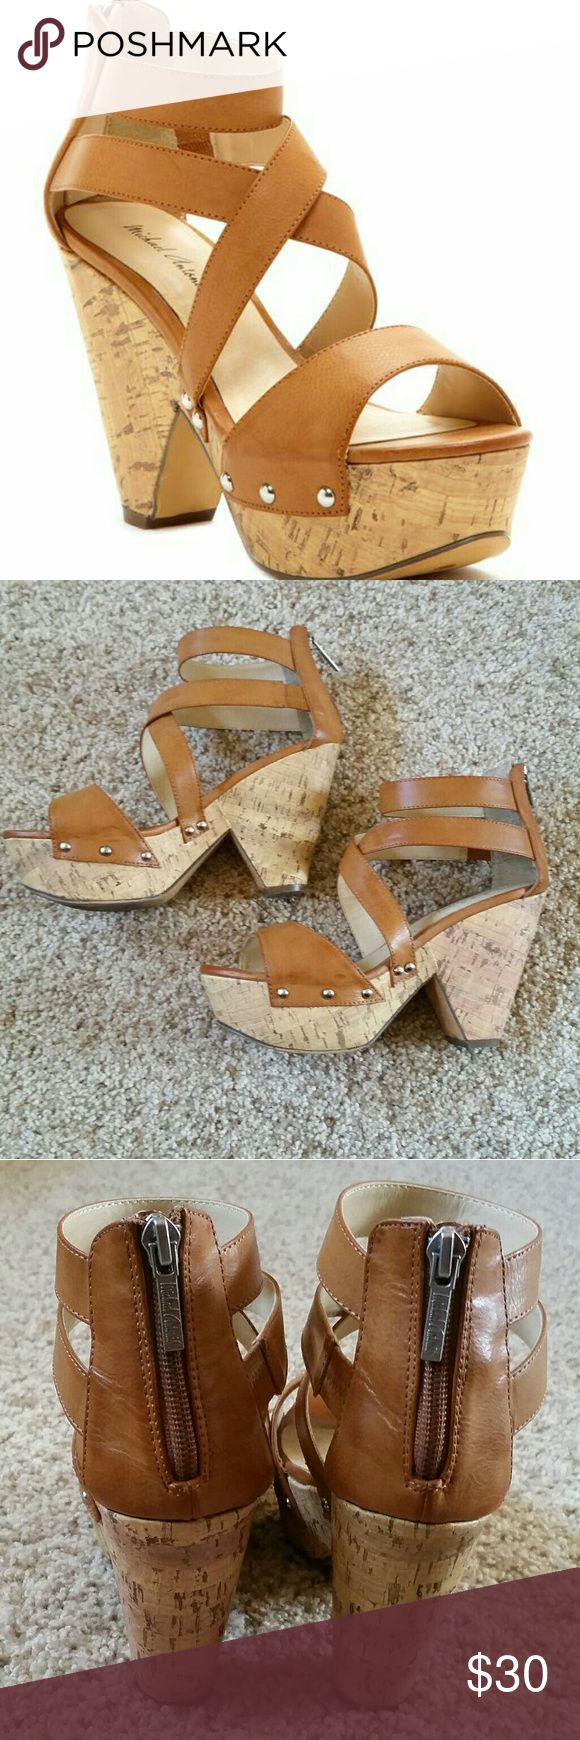 Michael Antonio Strappy Wedge Cork Sandals Excellent like new condition. Worn twice. Cork bottom. Wedge platform heel. Size 7. Perfect for spring and summer. Smoke and pet free home. Offers welcome! Michael Antonio Shoes Platforms